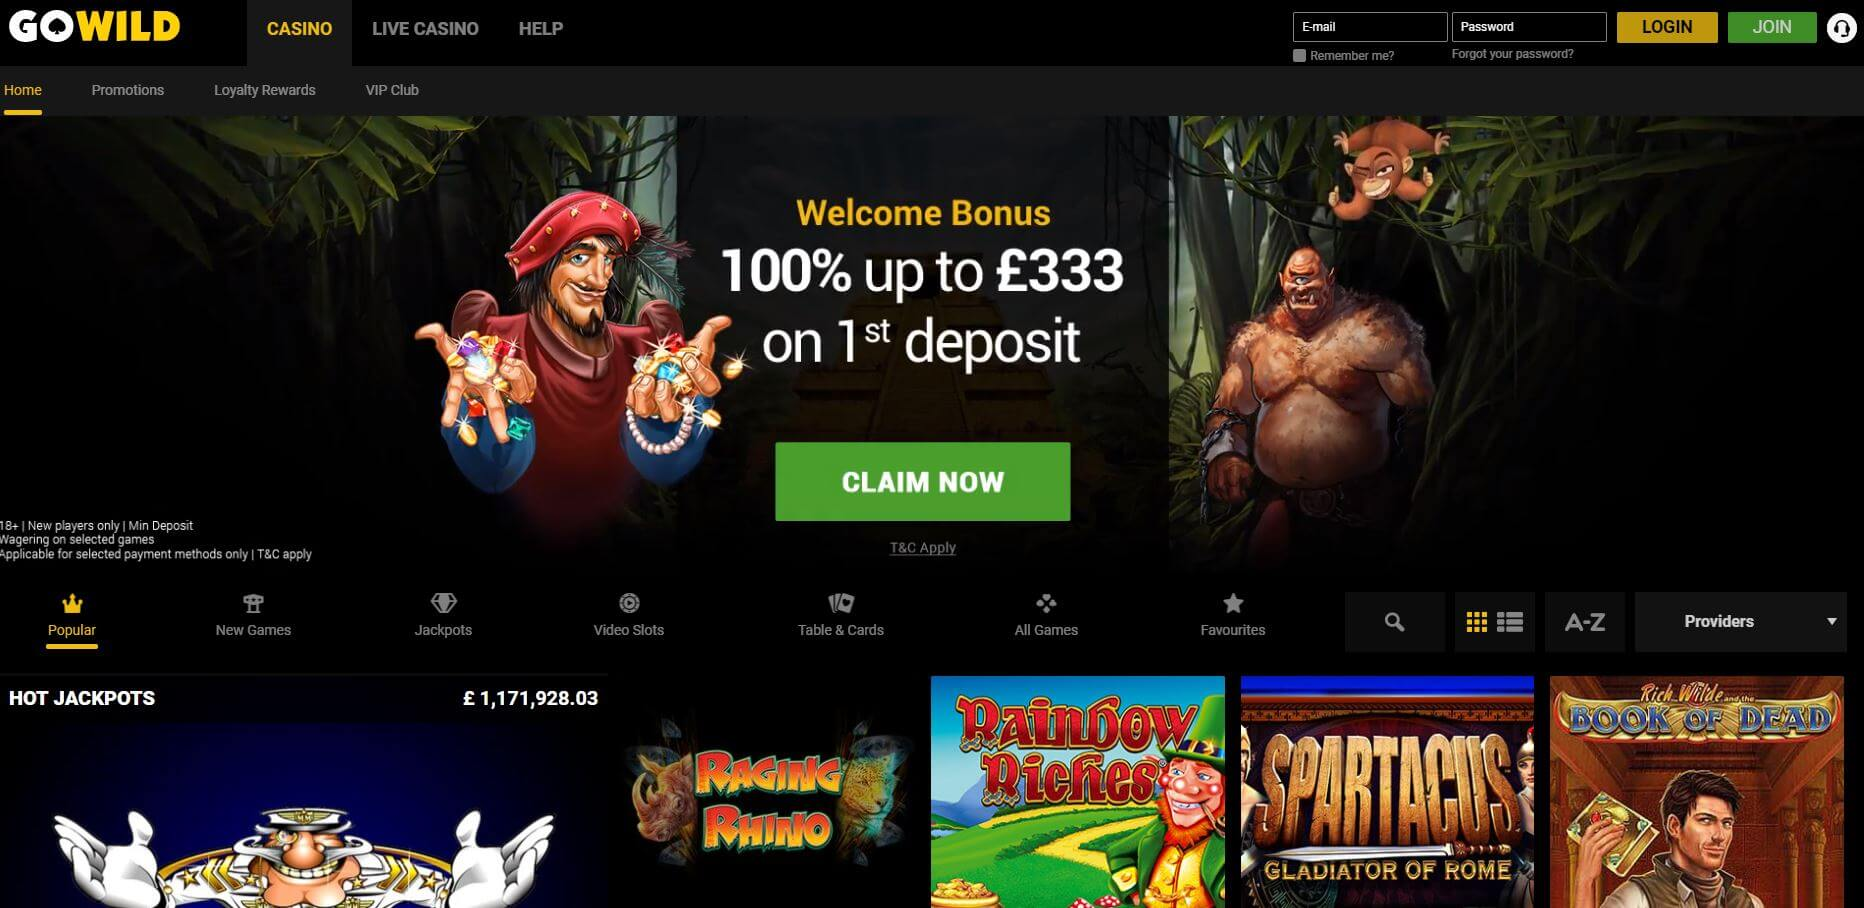 gowild casino review homepage